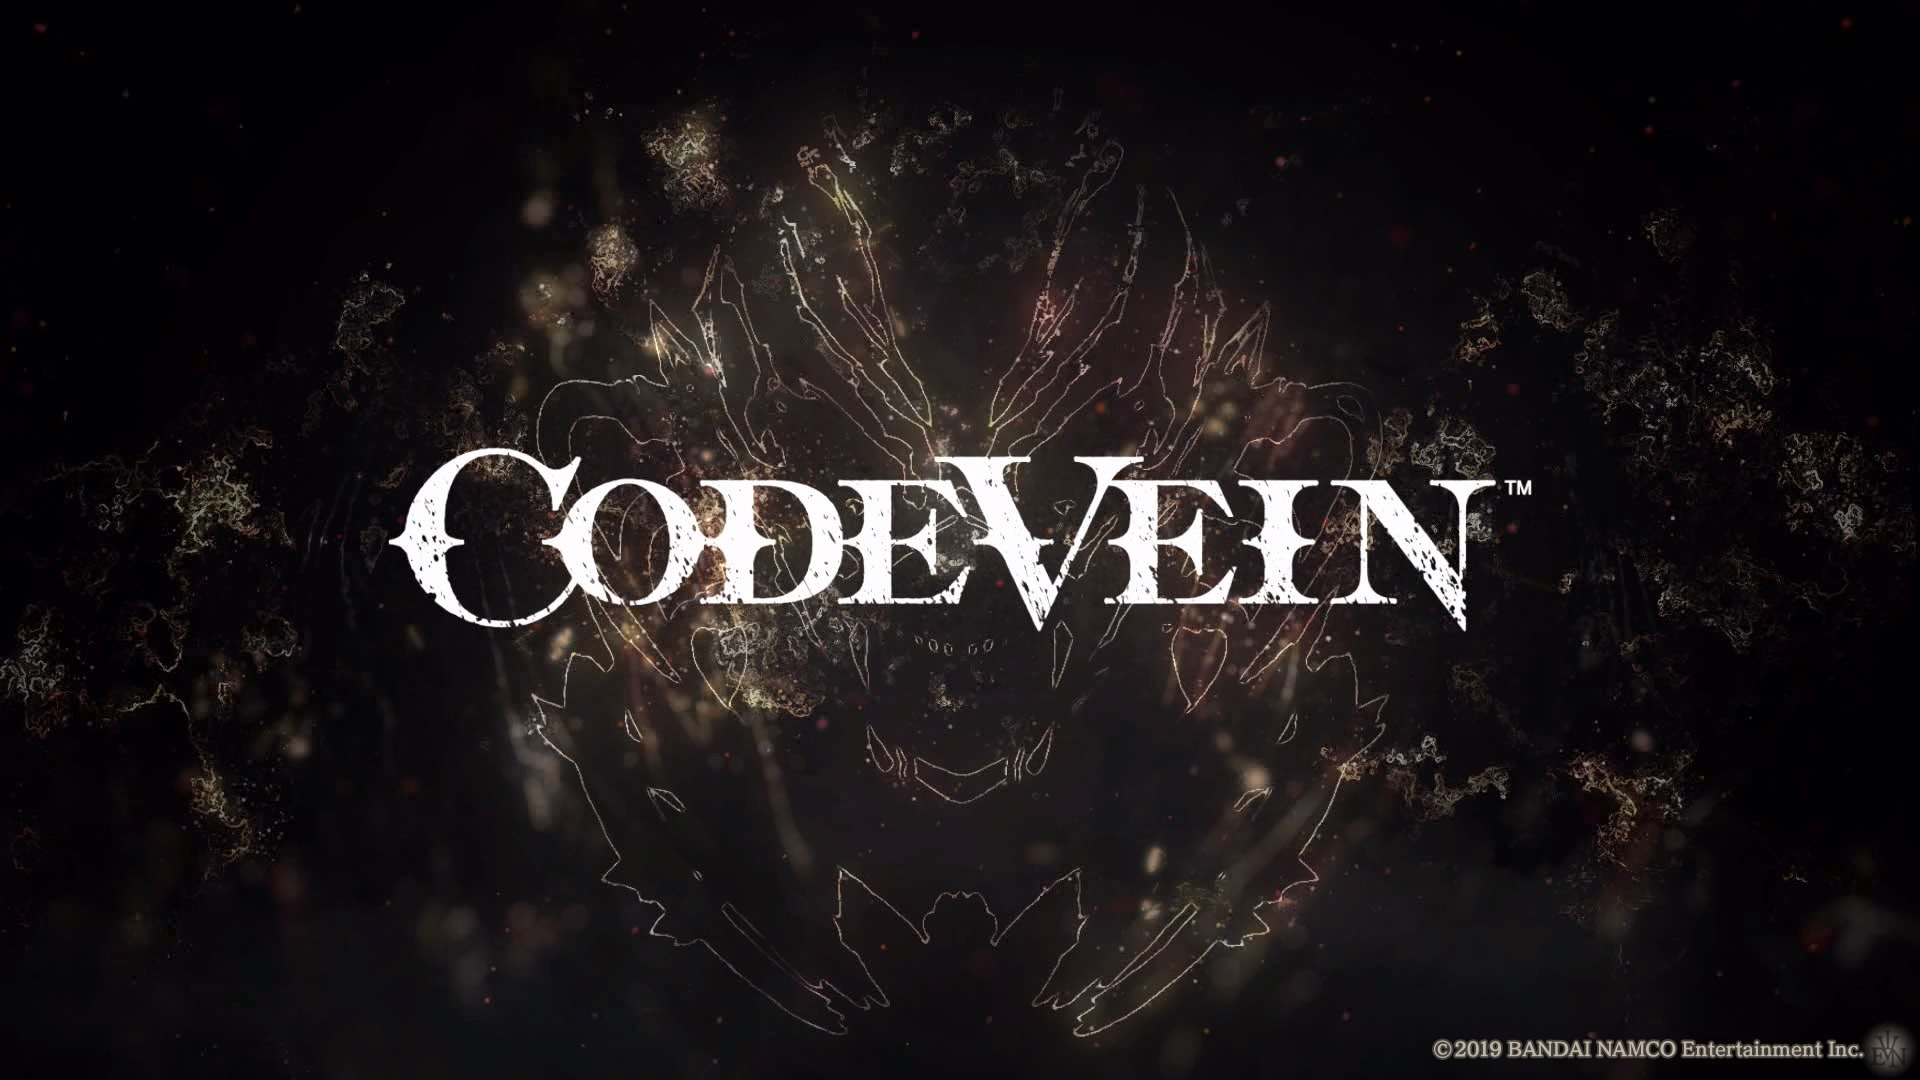 https://it.bandainamcoent.eu/code-vein/code-vein